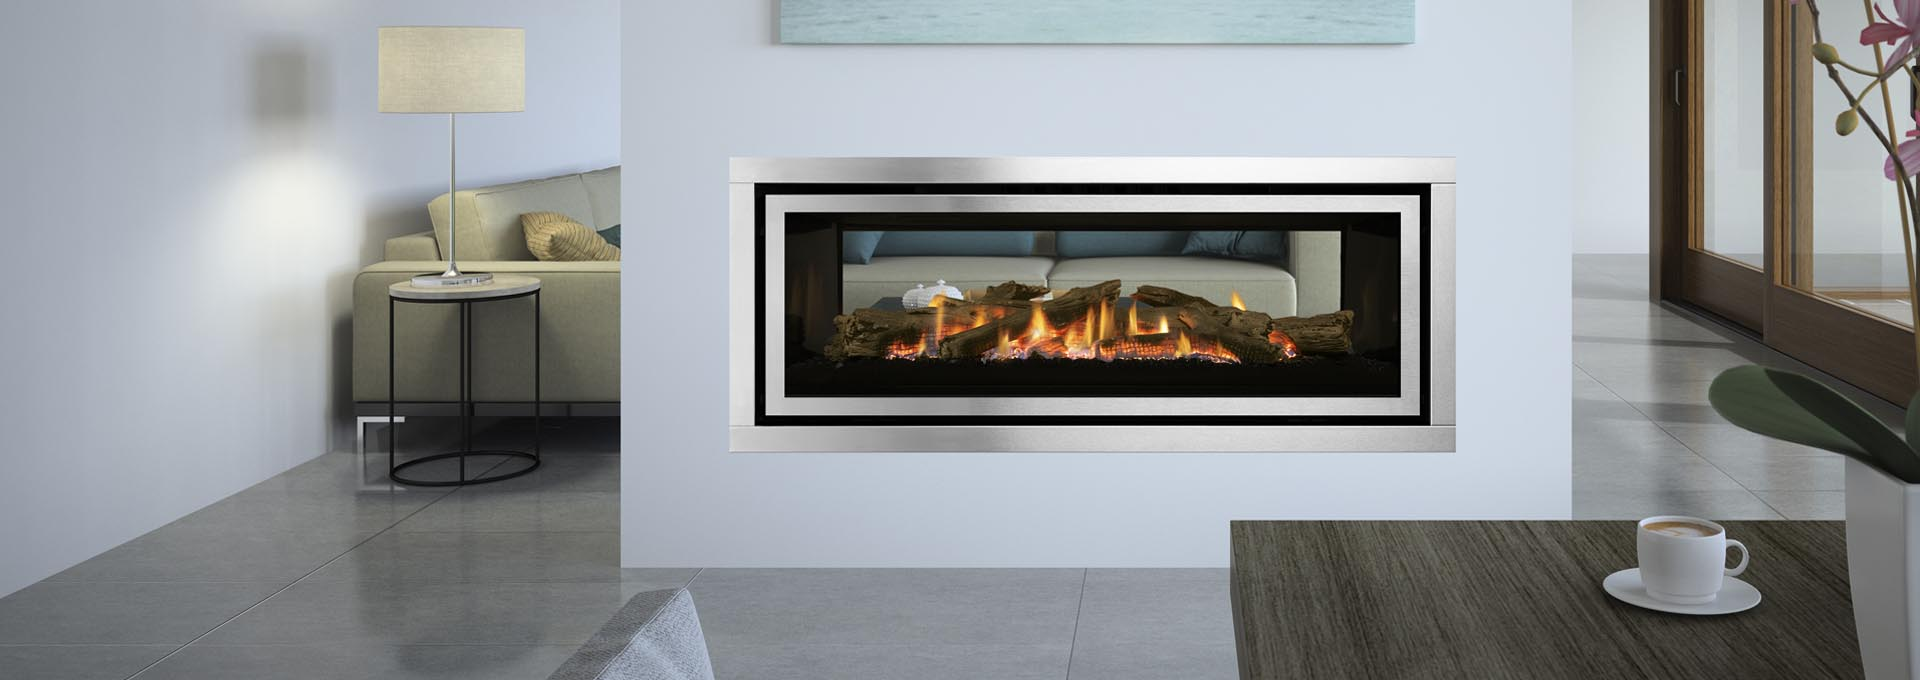 the newest fashion in gas log fires u2013 regency greenfire gf1500l